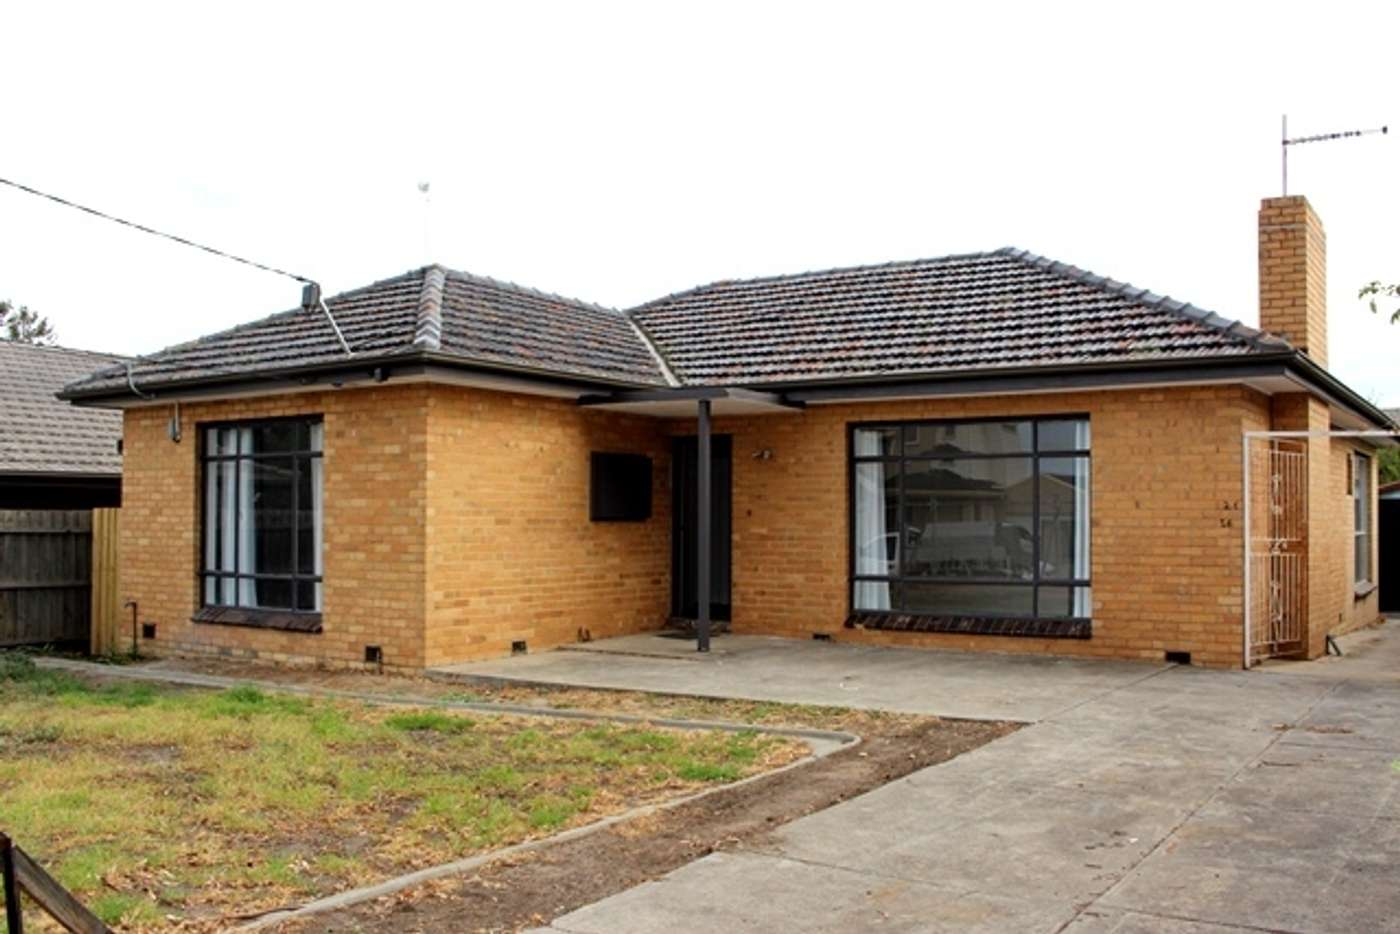 Main view of Homely house listing, 26 Essex Street, Sunshine North VIC 3020